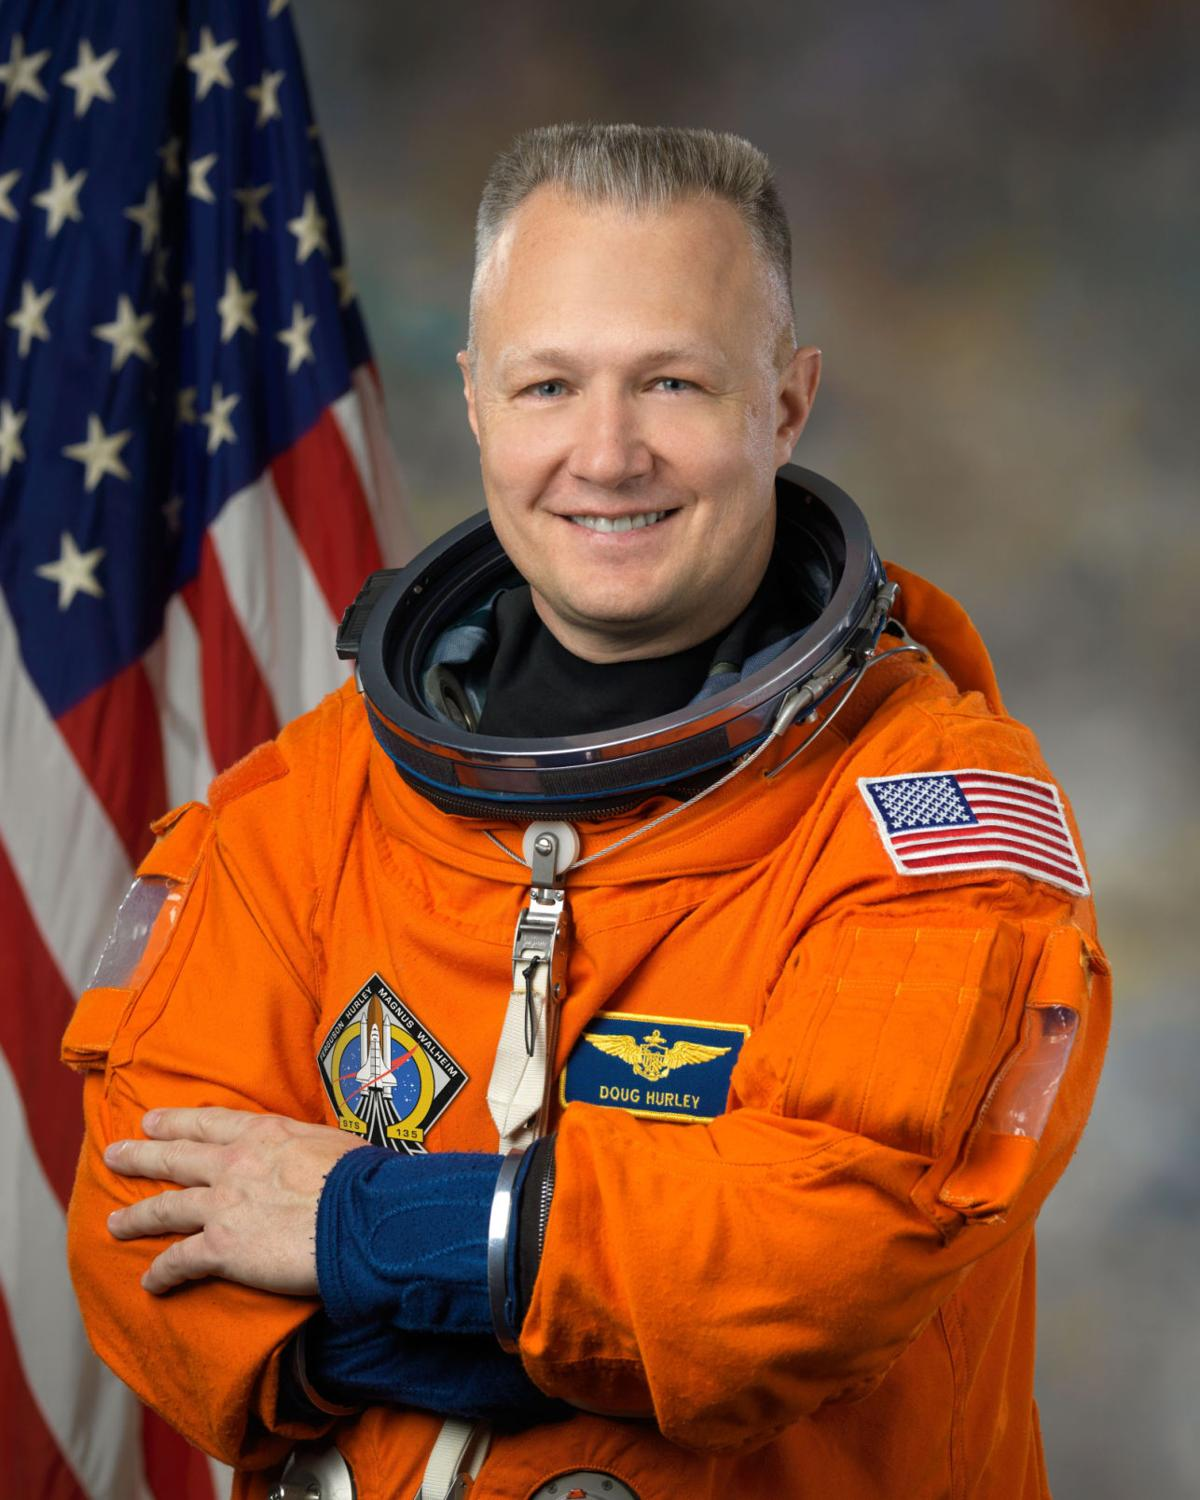 Astronaut with ties to Thousand Islands part of new era of American space flight